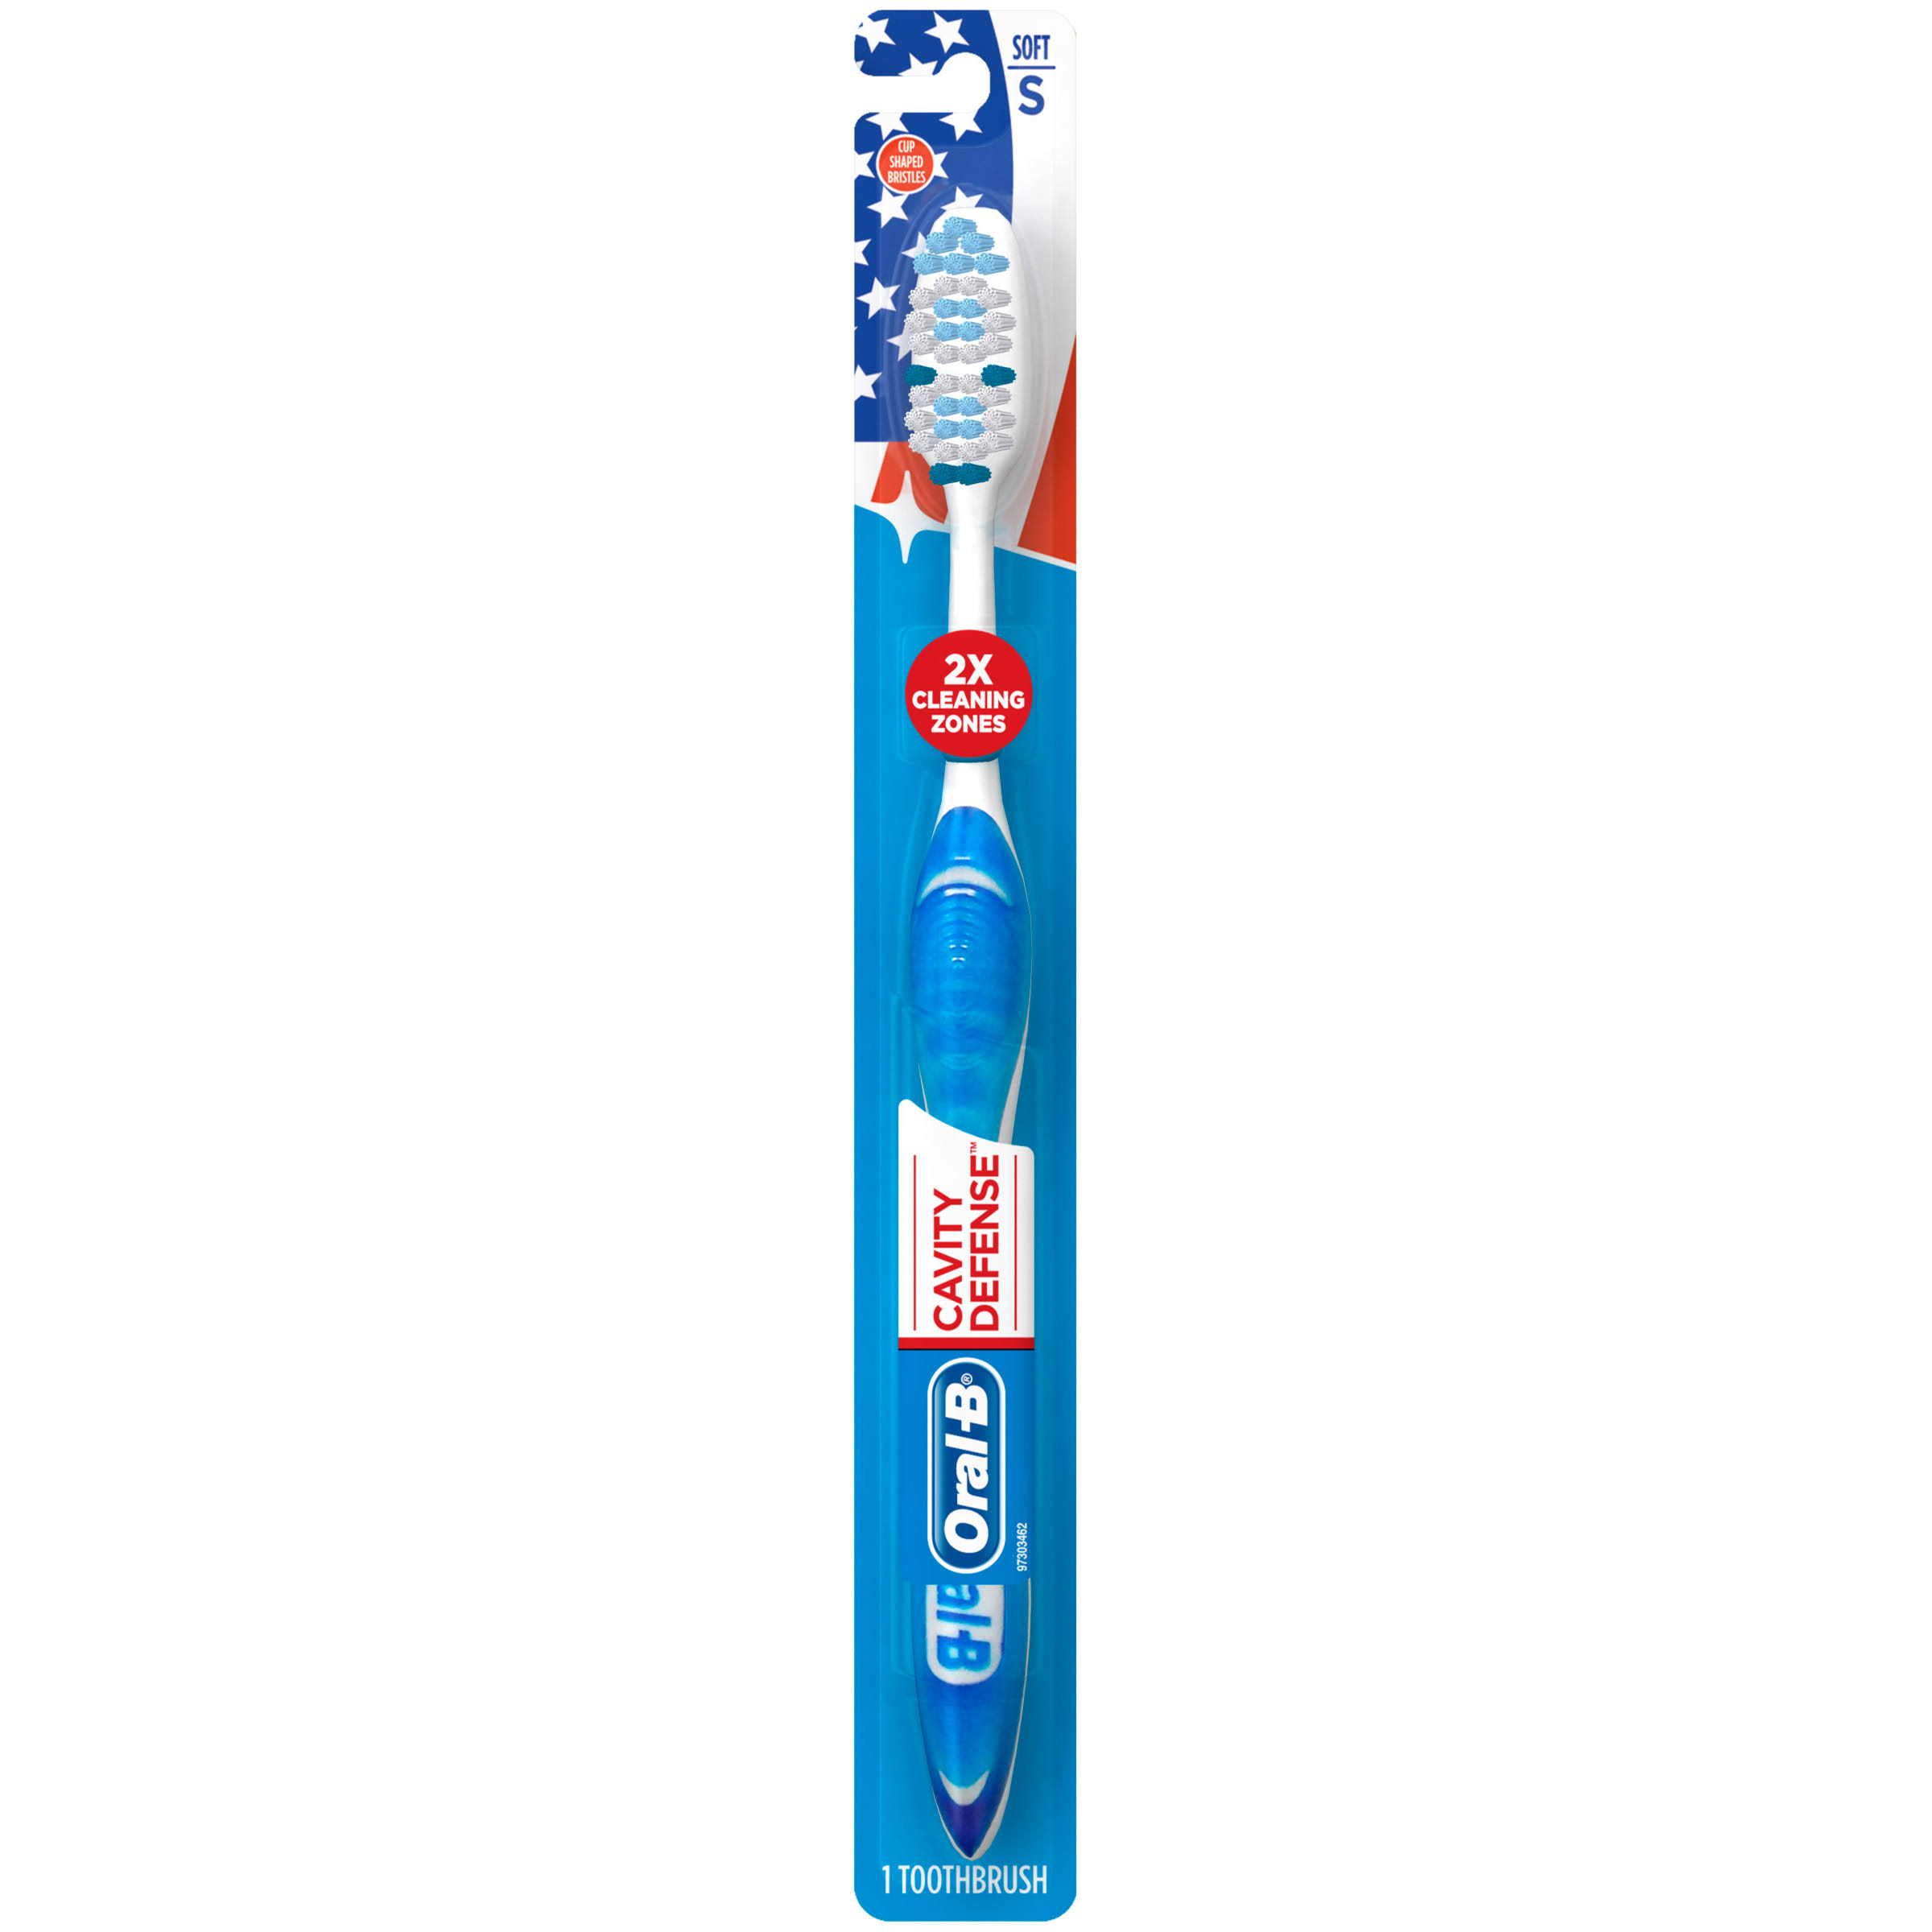 Oral-B Cavity Defense Toothbrush - Soft